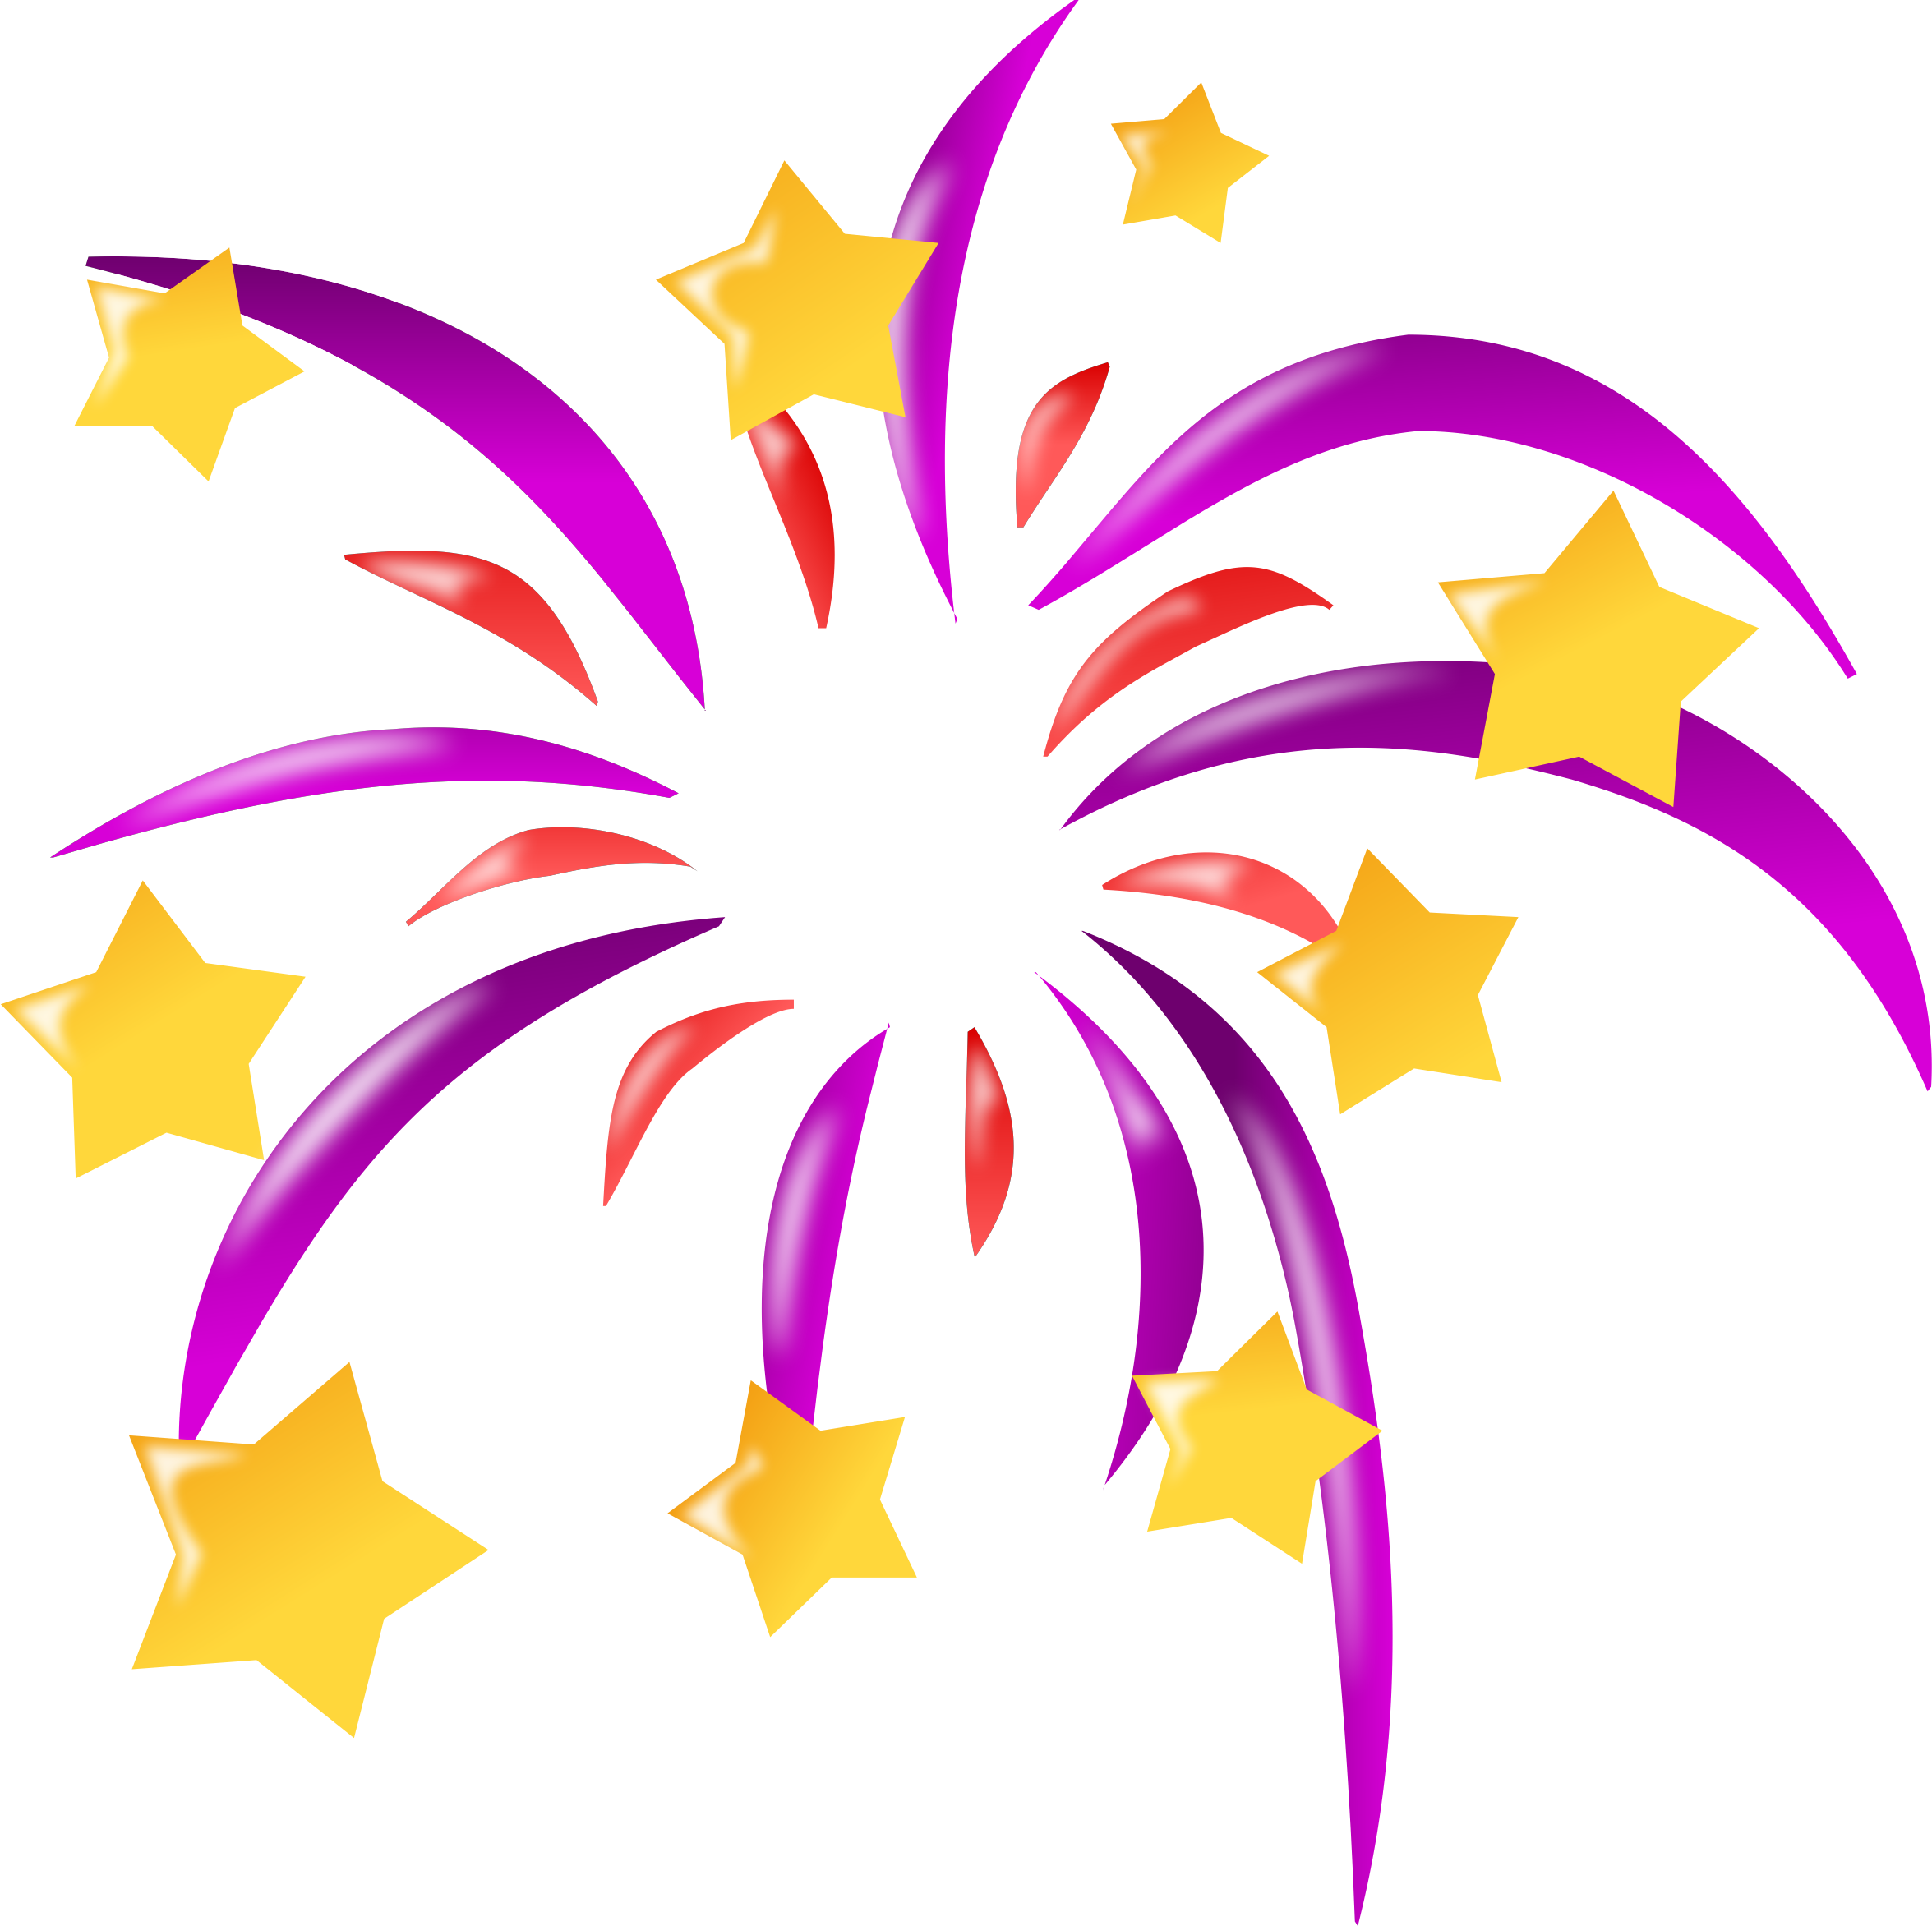 2351x2344 Fireworks Png Clip Art Png M 1496458501 Clipart Of Yanhe Clip Art